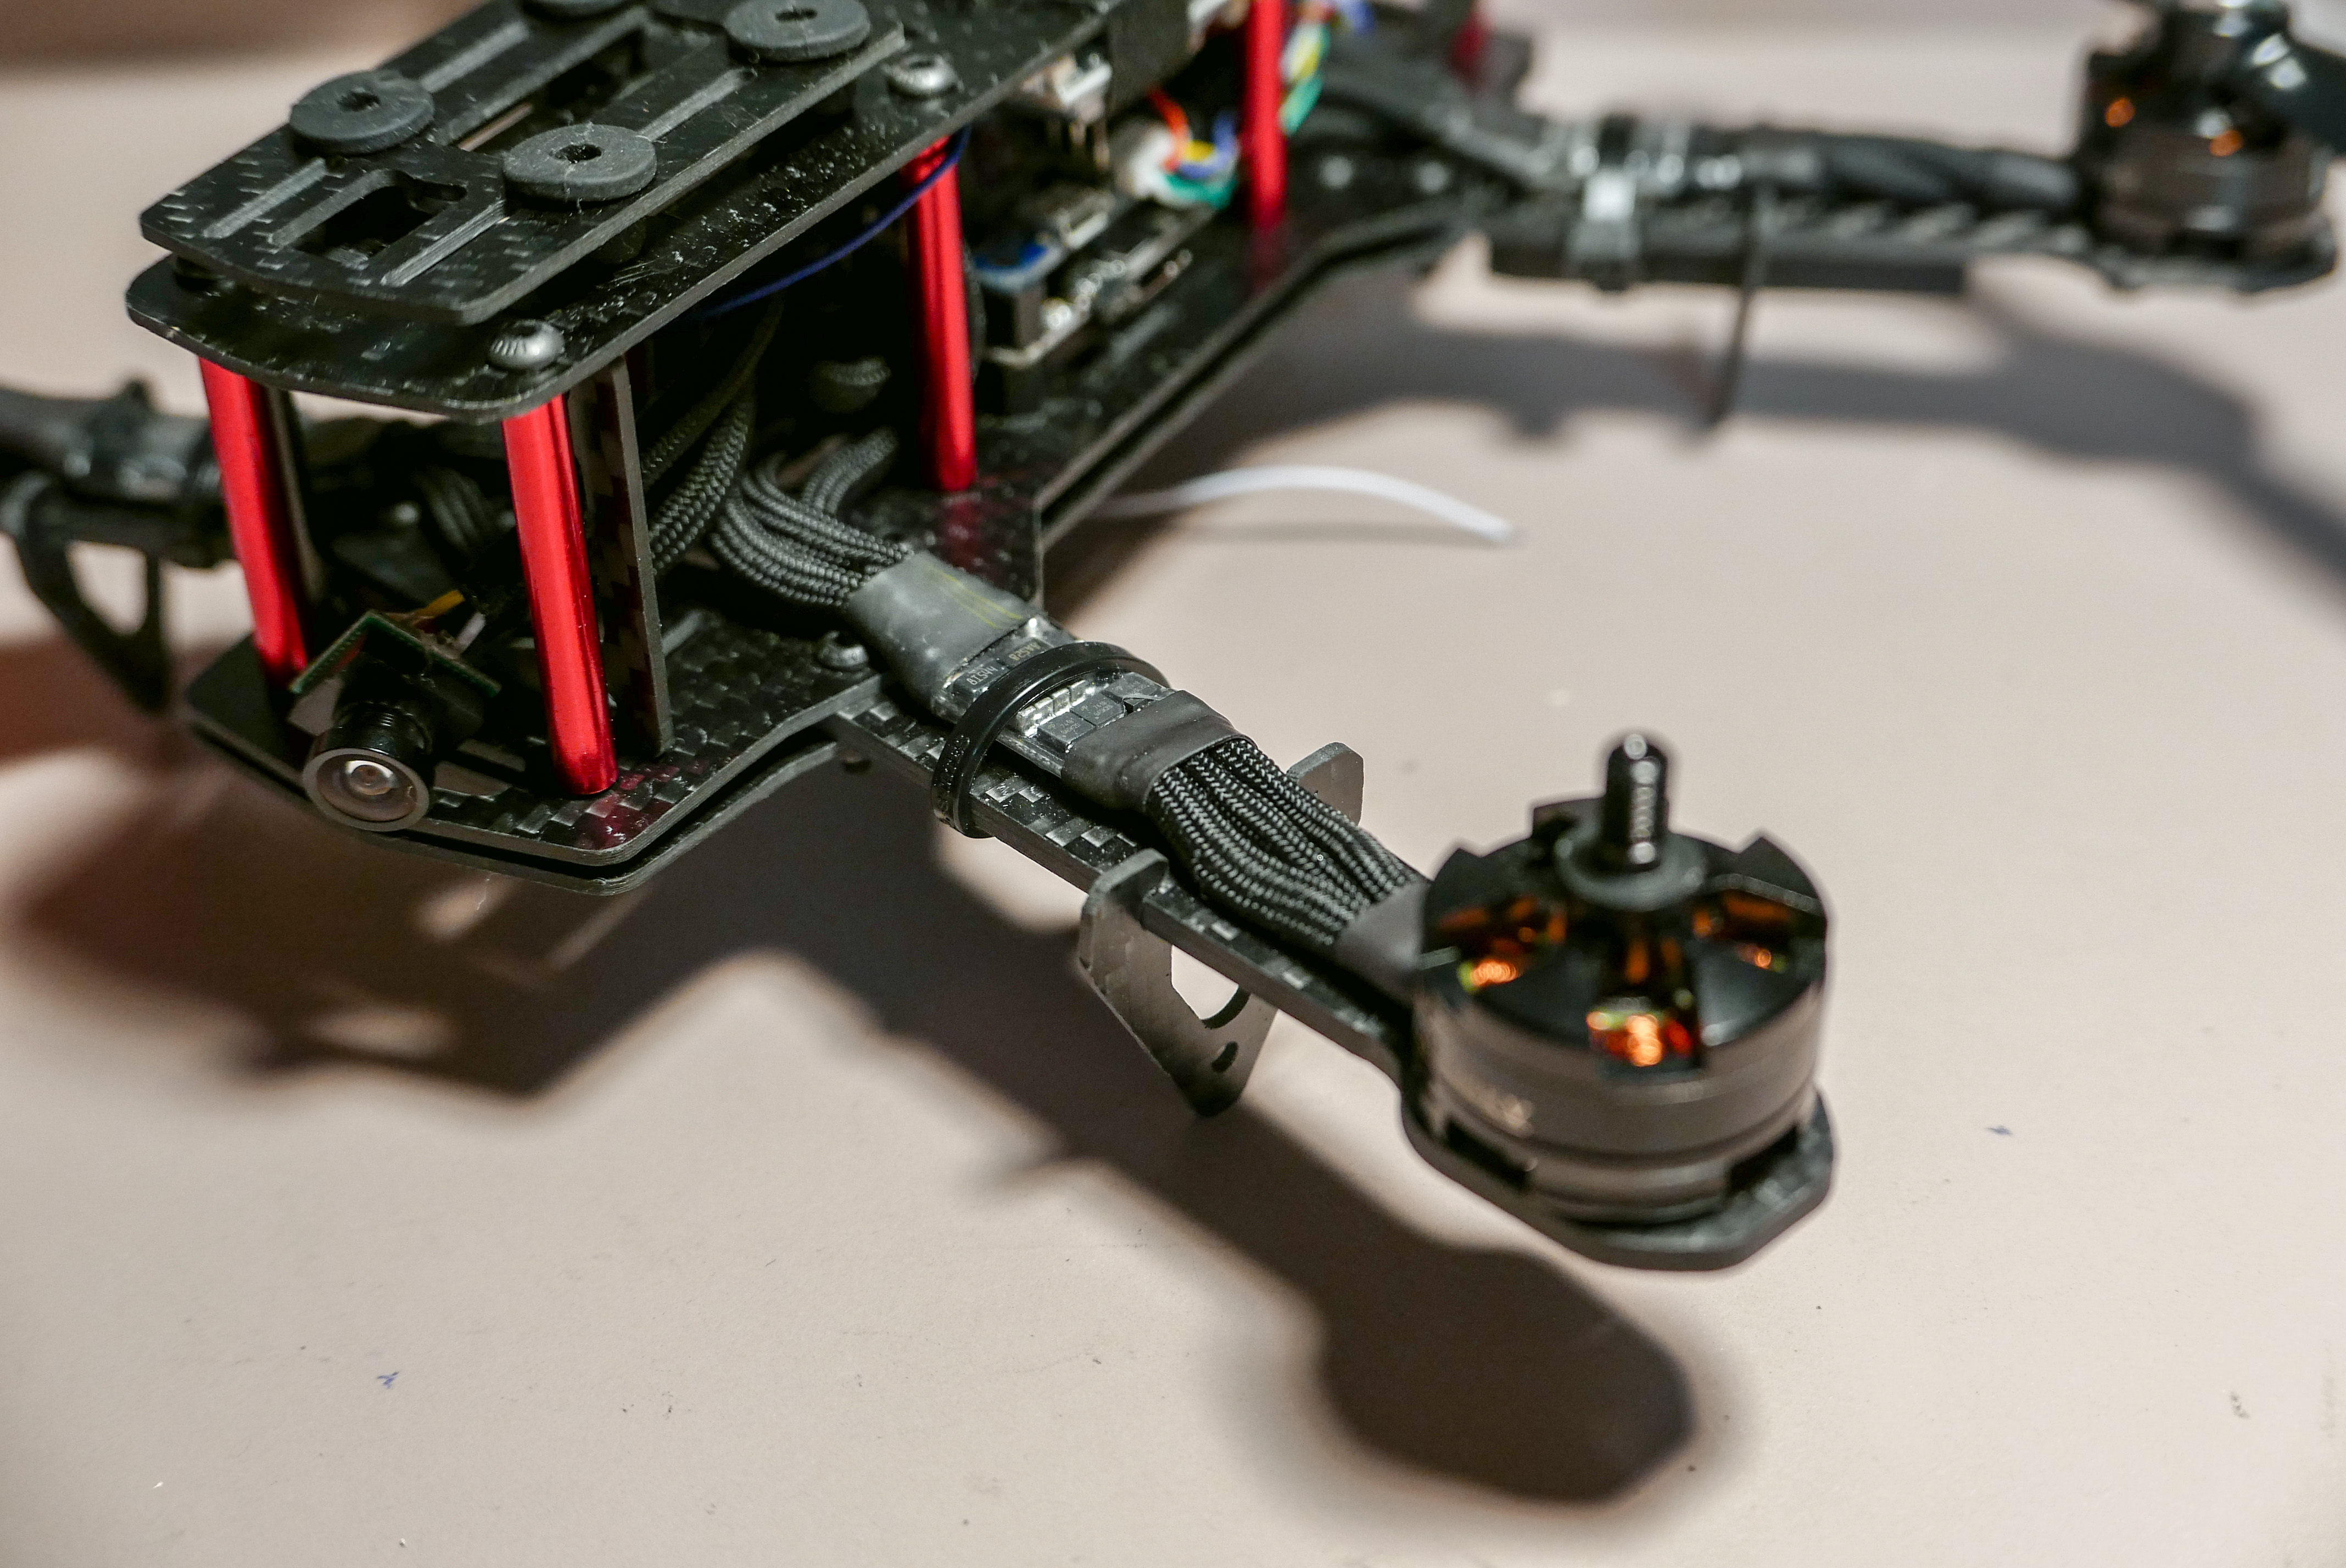 How To Sleeve Cables and Manage Wires on a Quadcopter – PCB Isolation